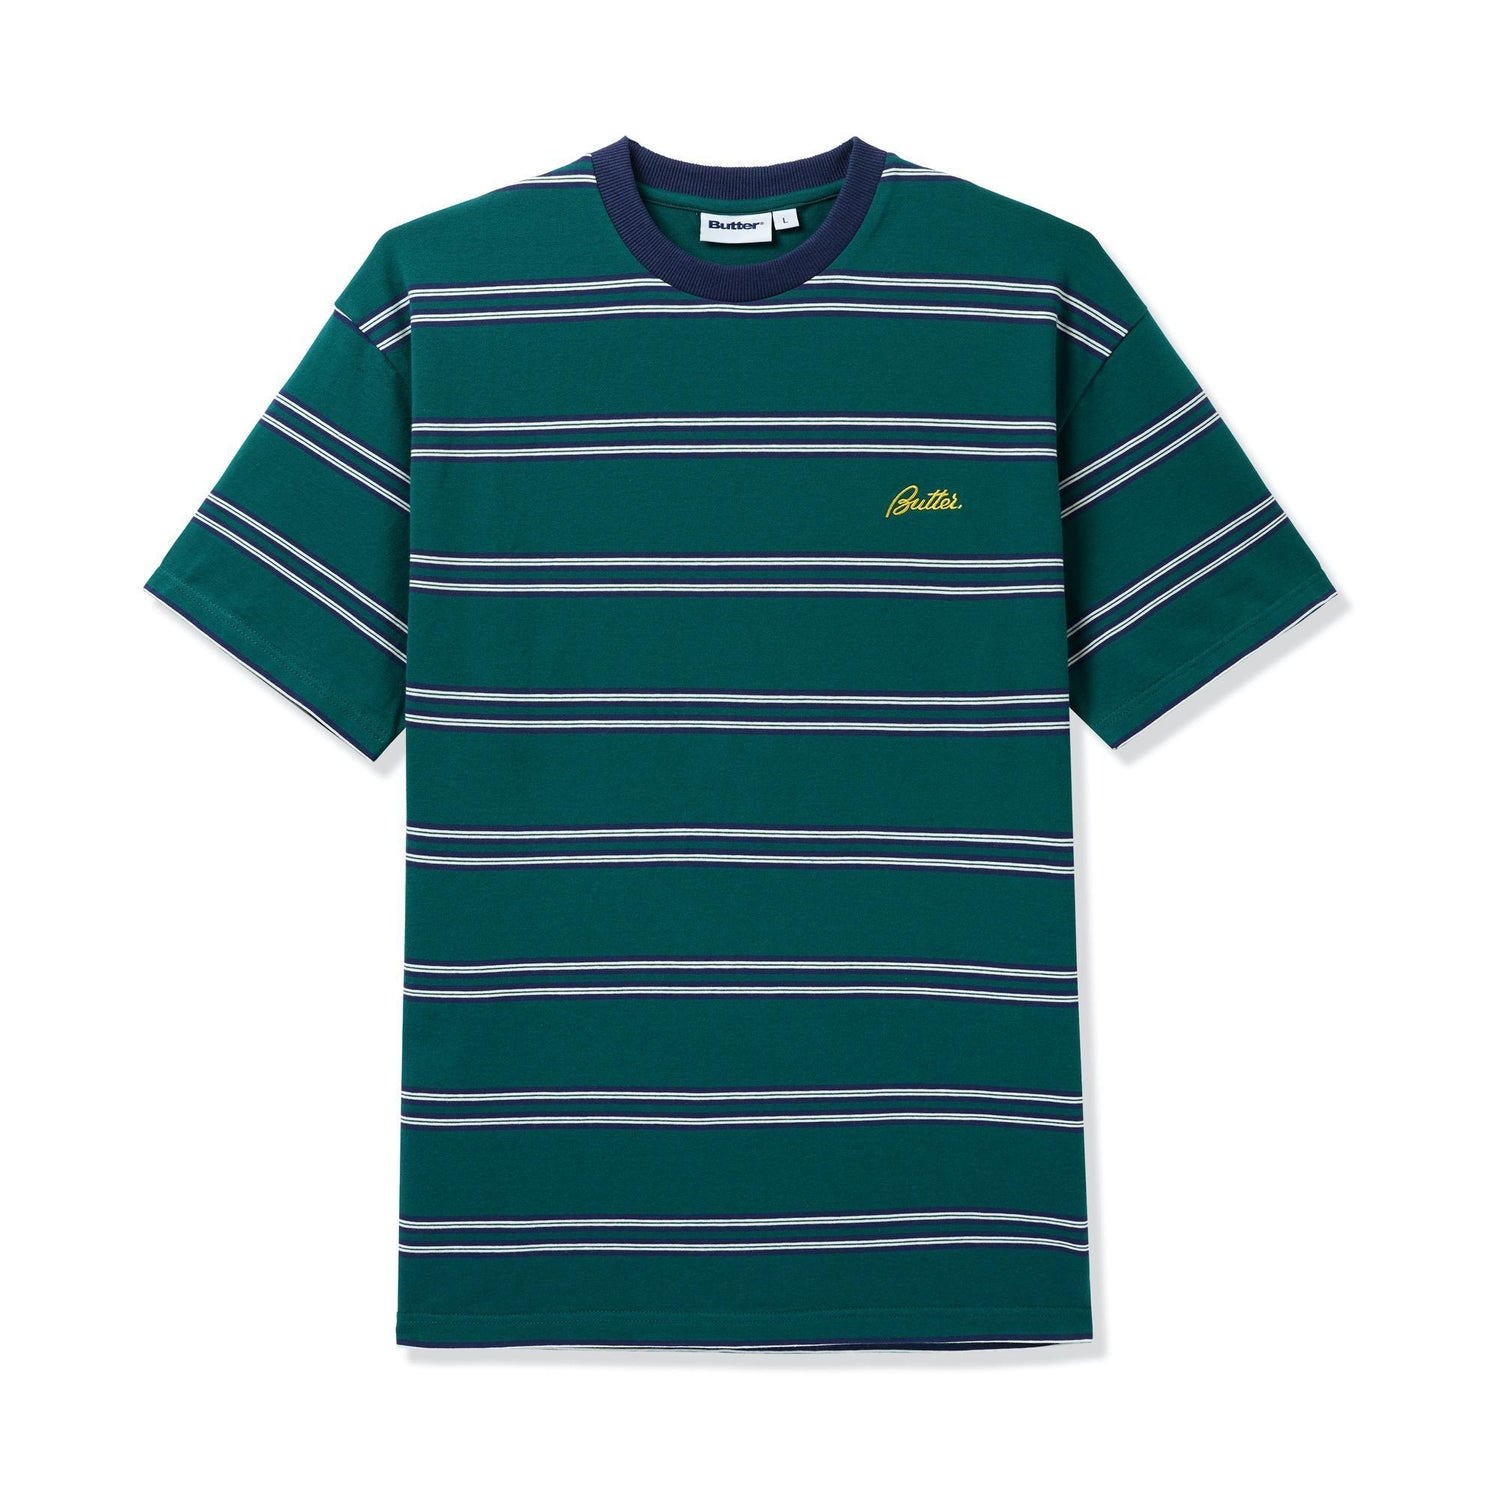 Market Stripe Tee, Forest / Navy / Yellow